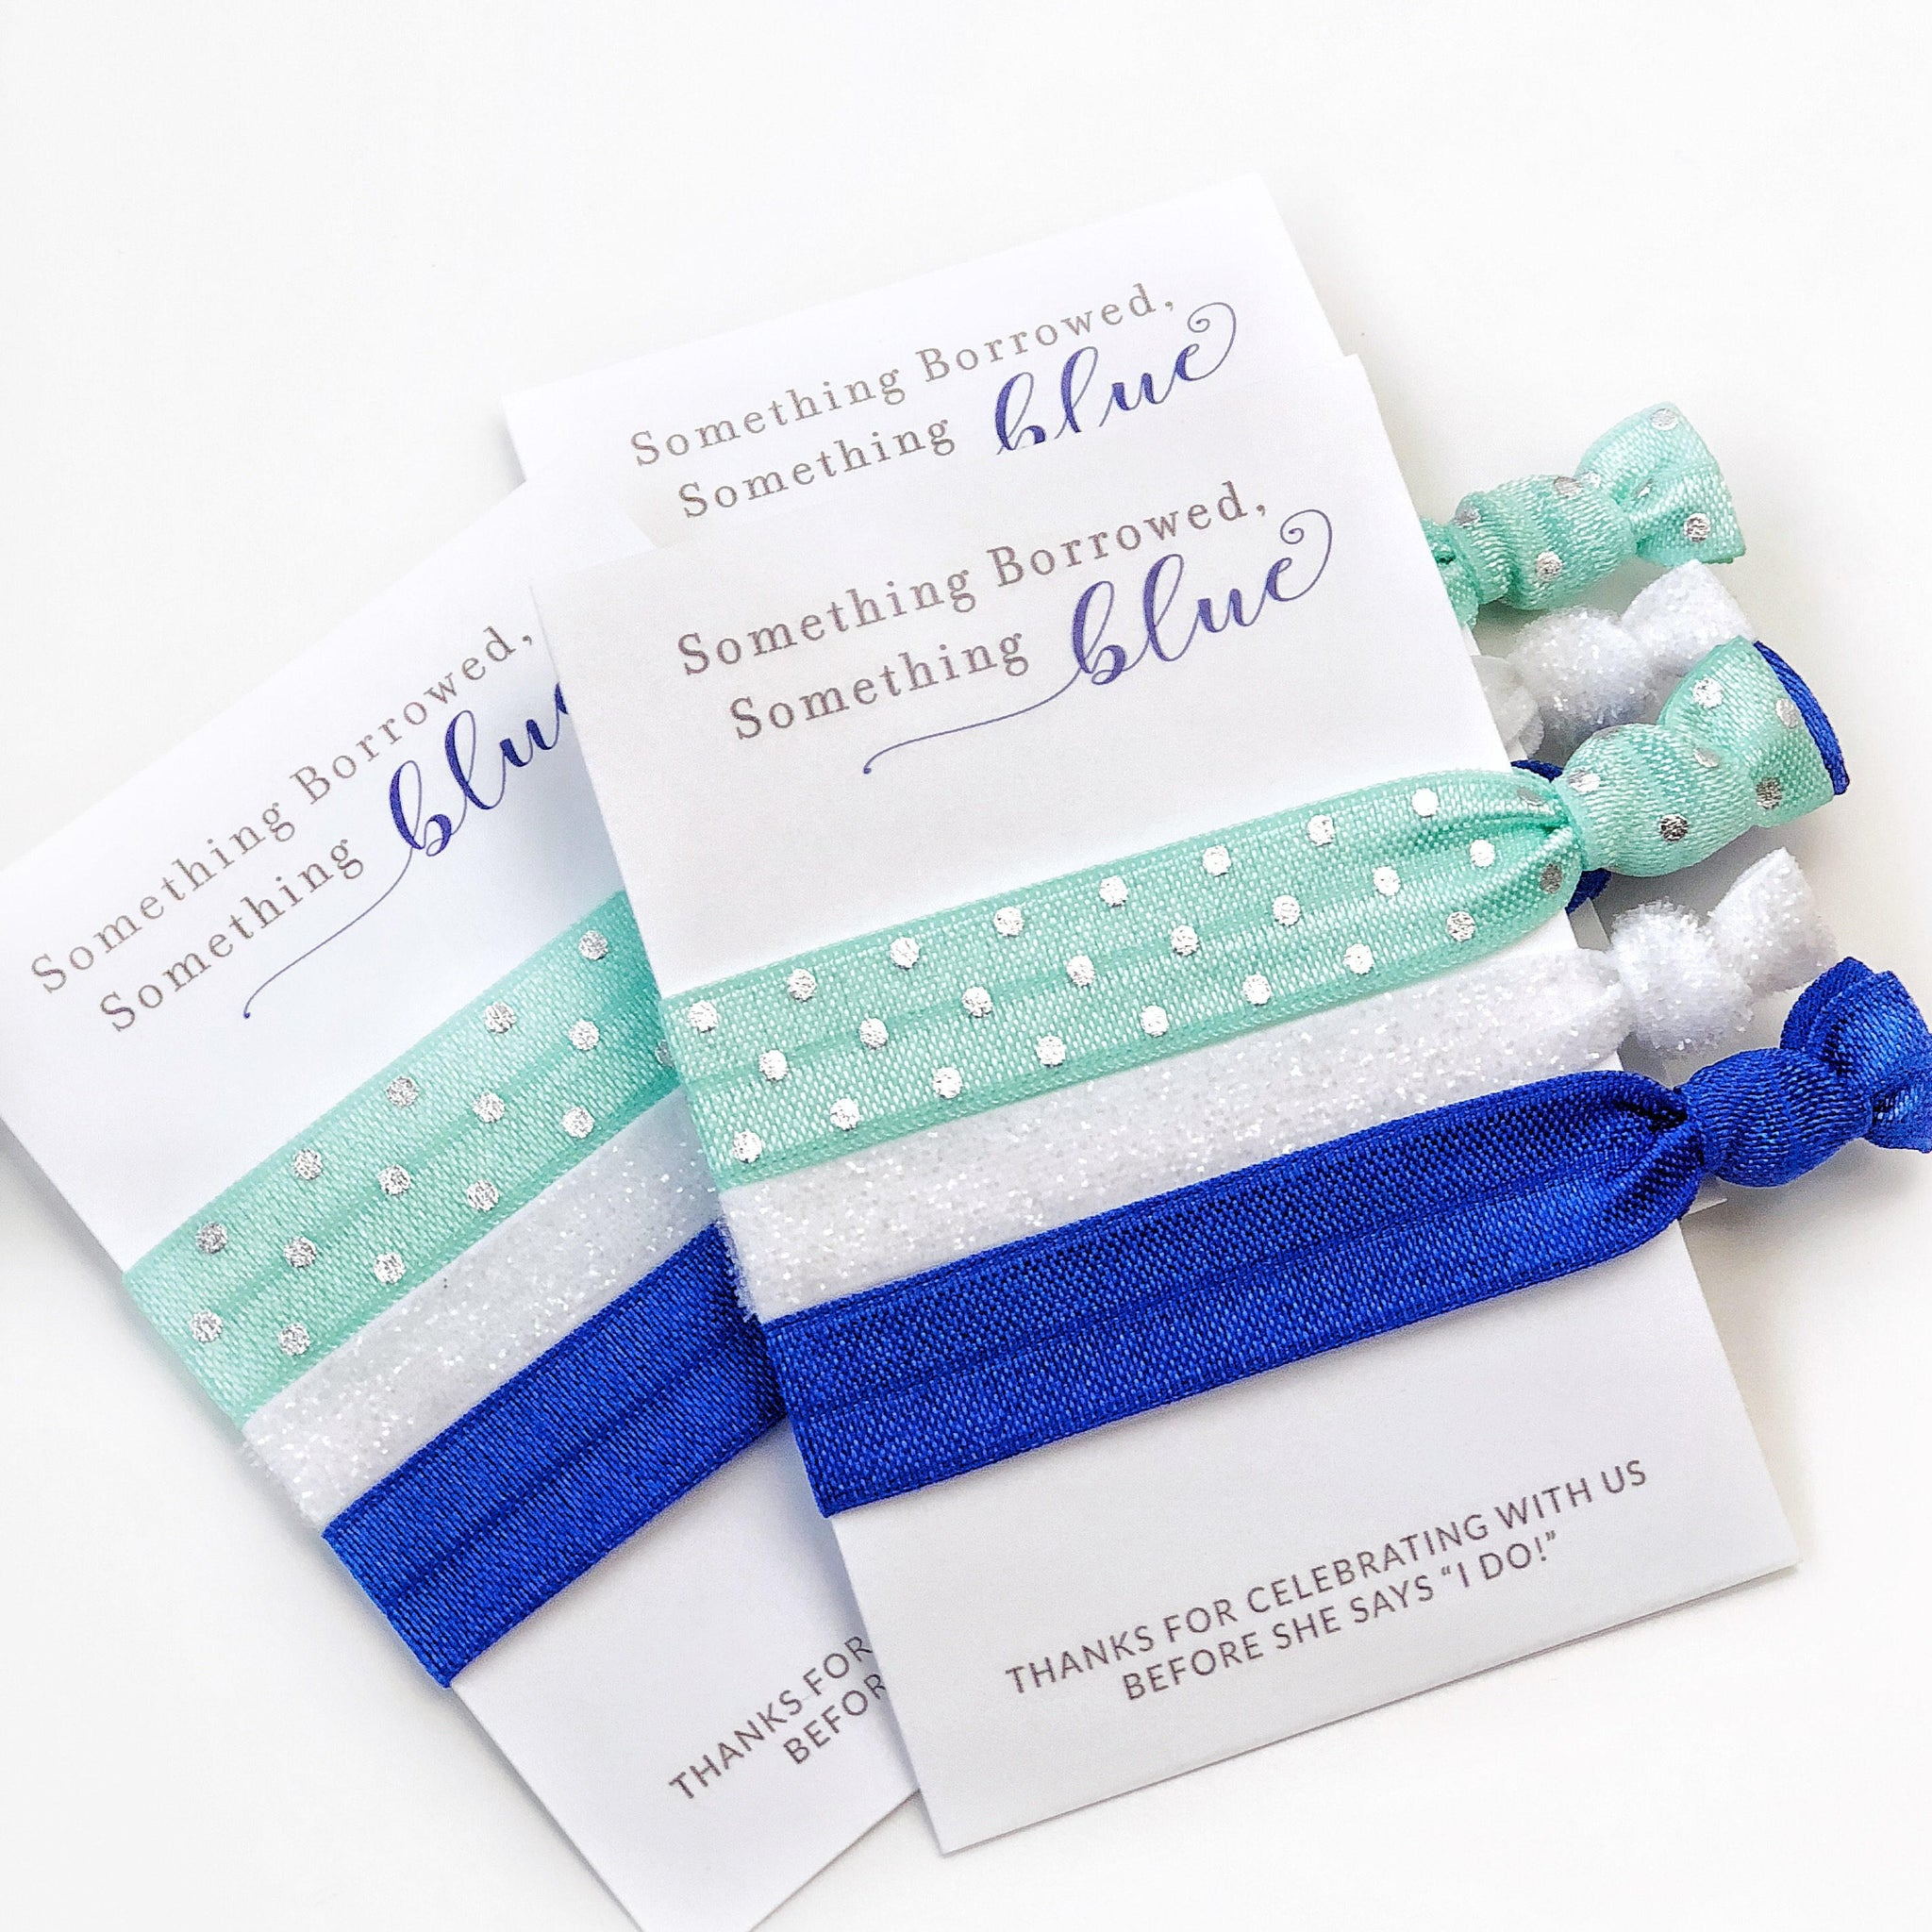 Something Blue Bridal Shower and Bachelorette Party Favors - Small Gifts - @PlumPolkaDot